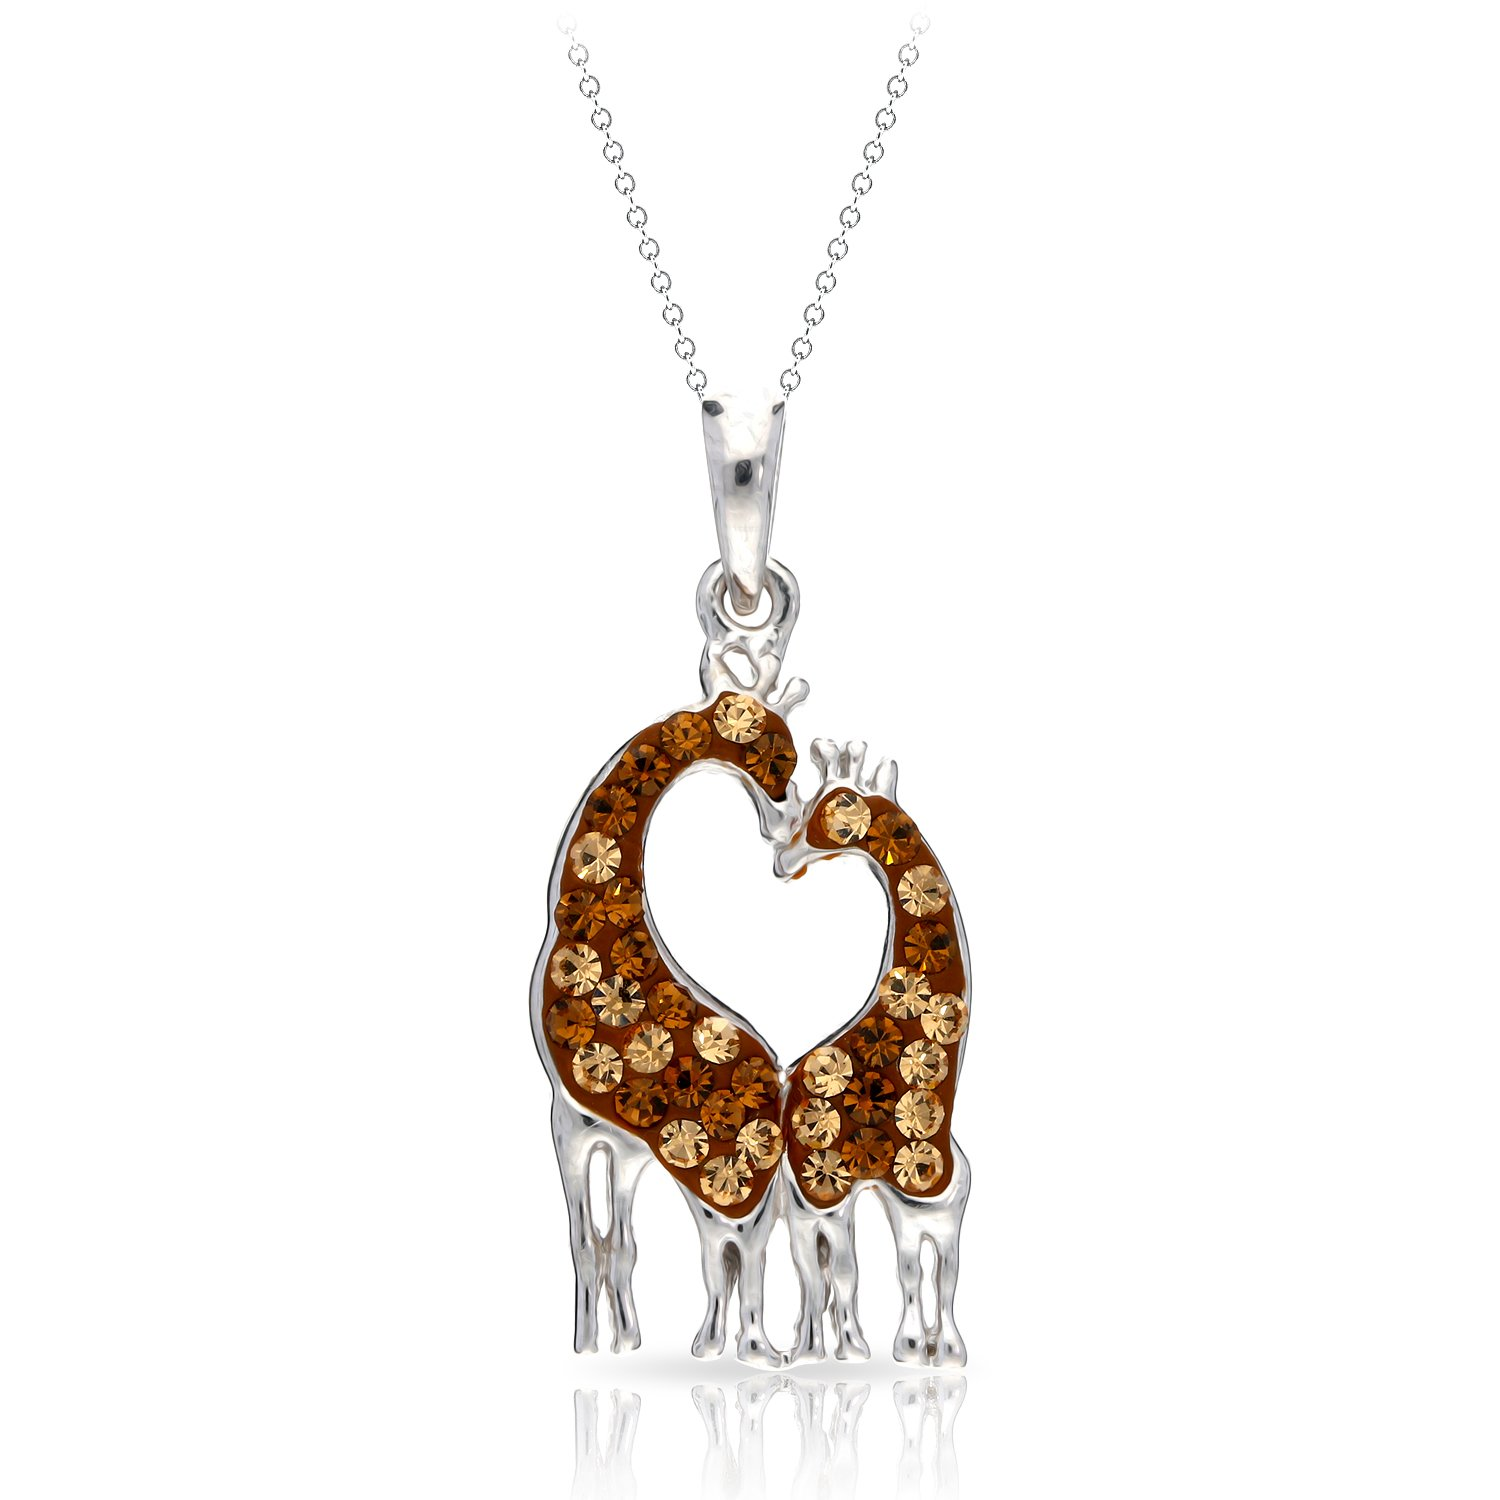 Gentle   Elegant Giraffe Couple in Love Pendant Necklace Never Rust 925  Sterling Silver Hypoallergenic Chain for Women and Girls 584d25ed4f16